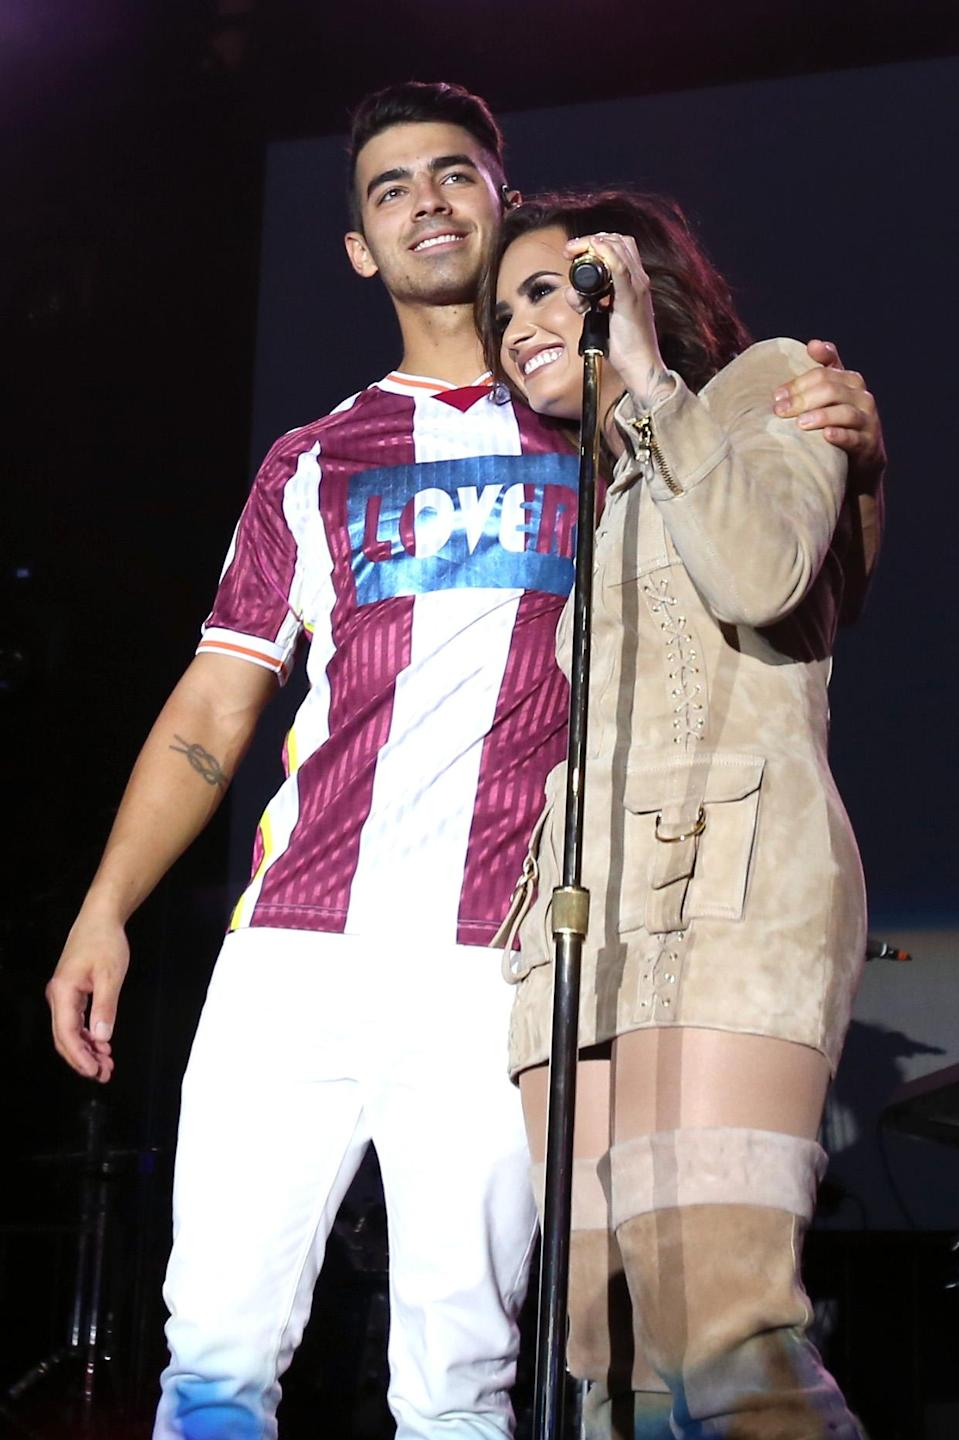 Joe Jonas and Demi Lovato, seen performing together in 2016, have remained friendly after their 2010 romance. (Photo: Jonathan Leibson/Getty Images for Marriott)